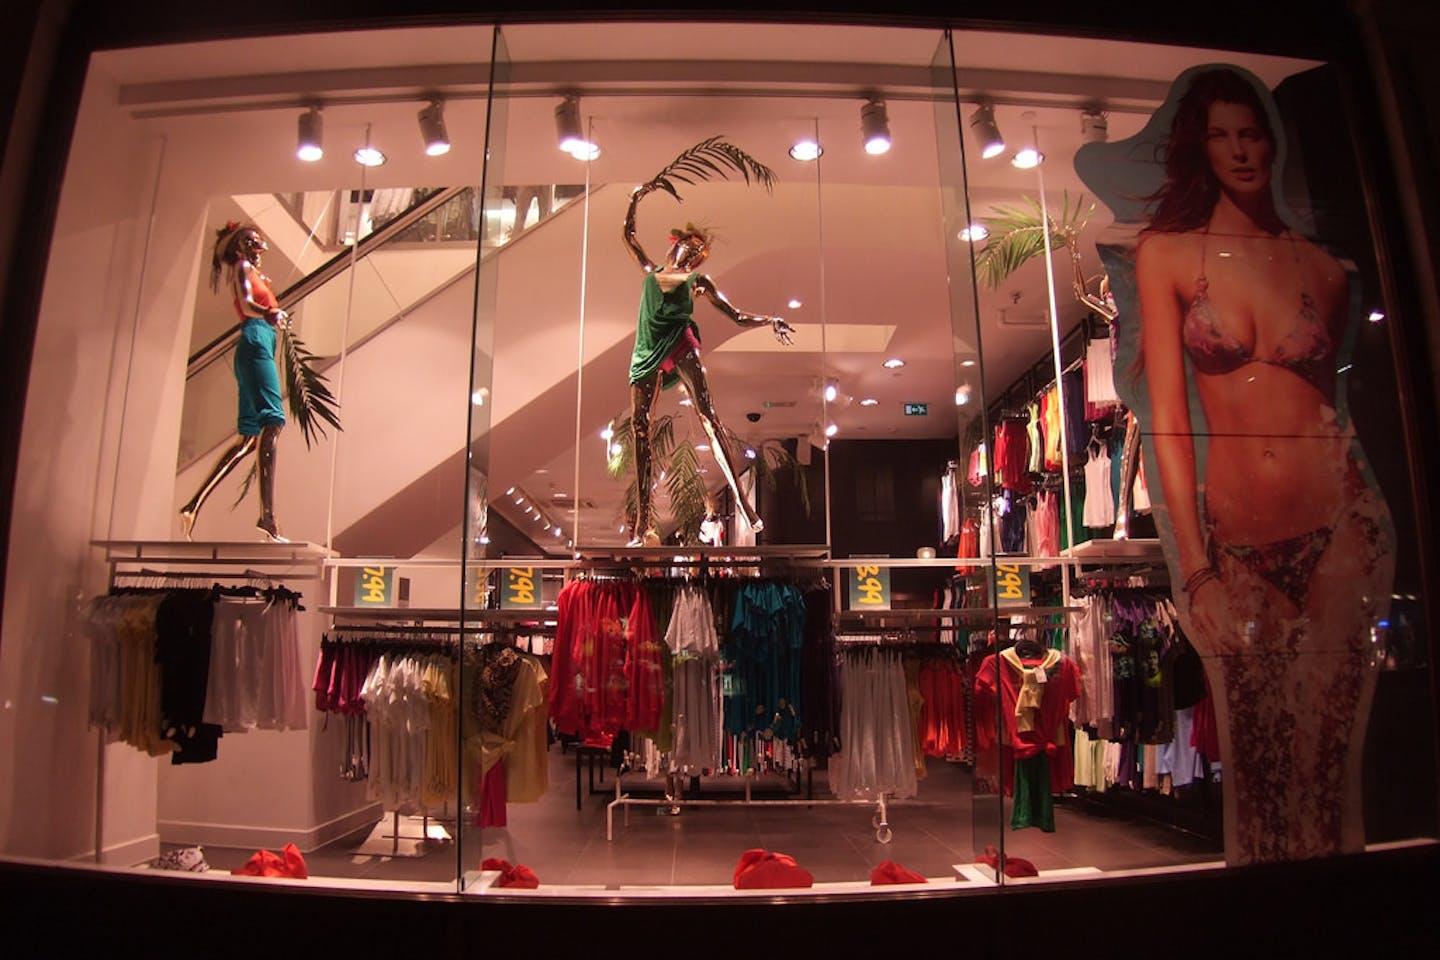 An H&M storefront in Oxford Circus, London